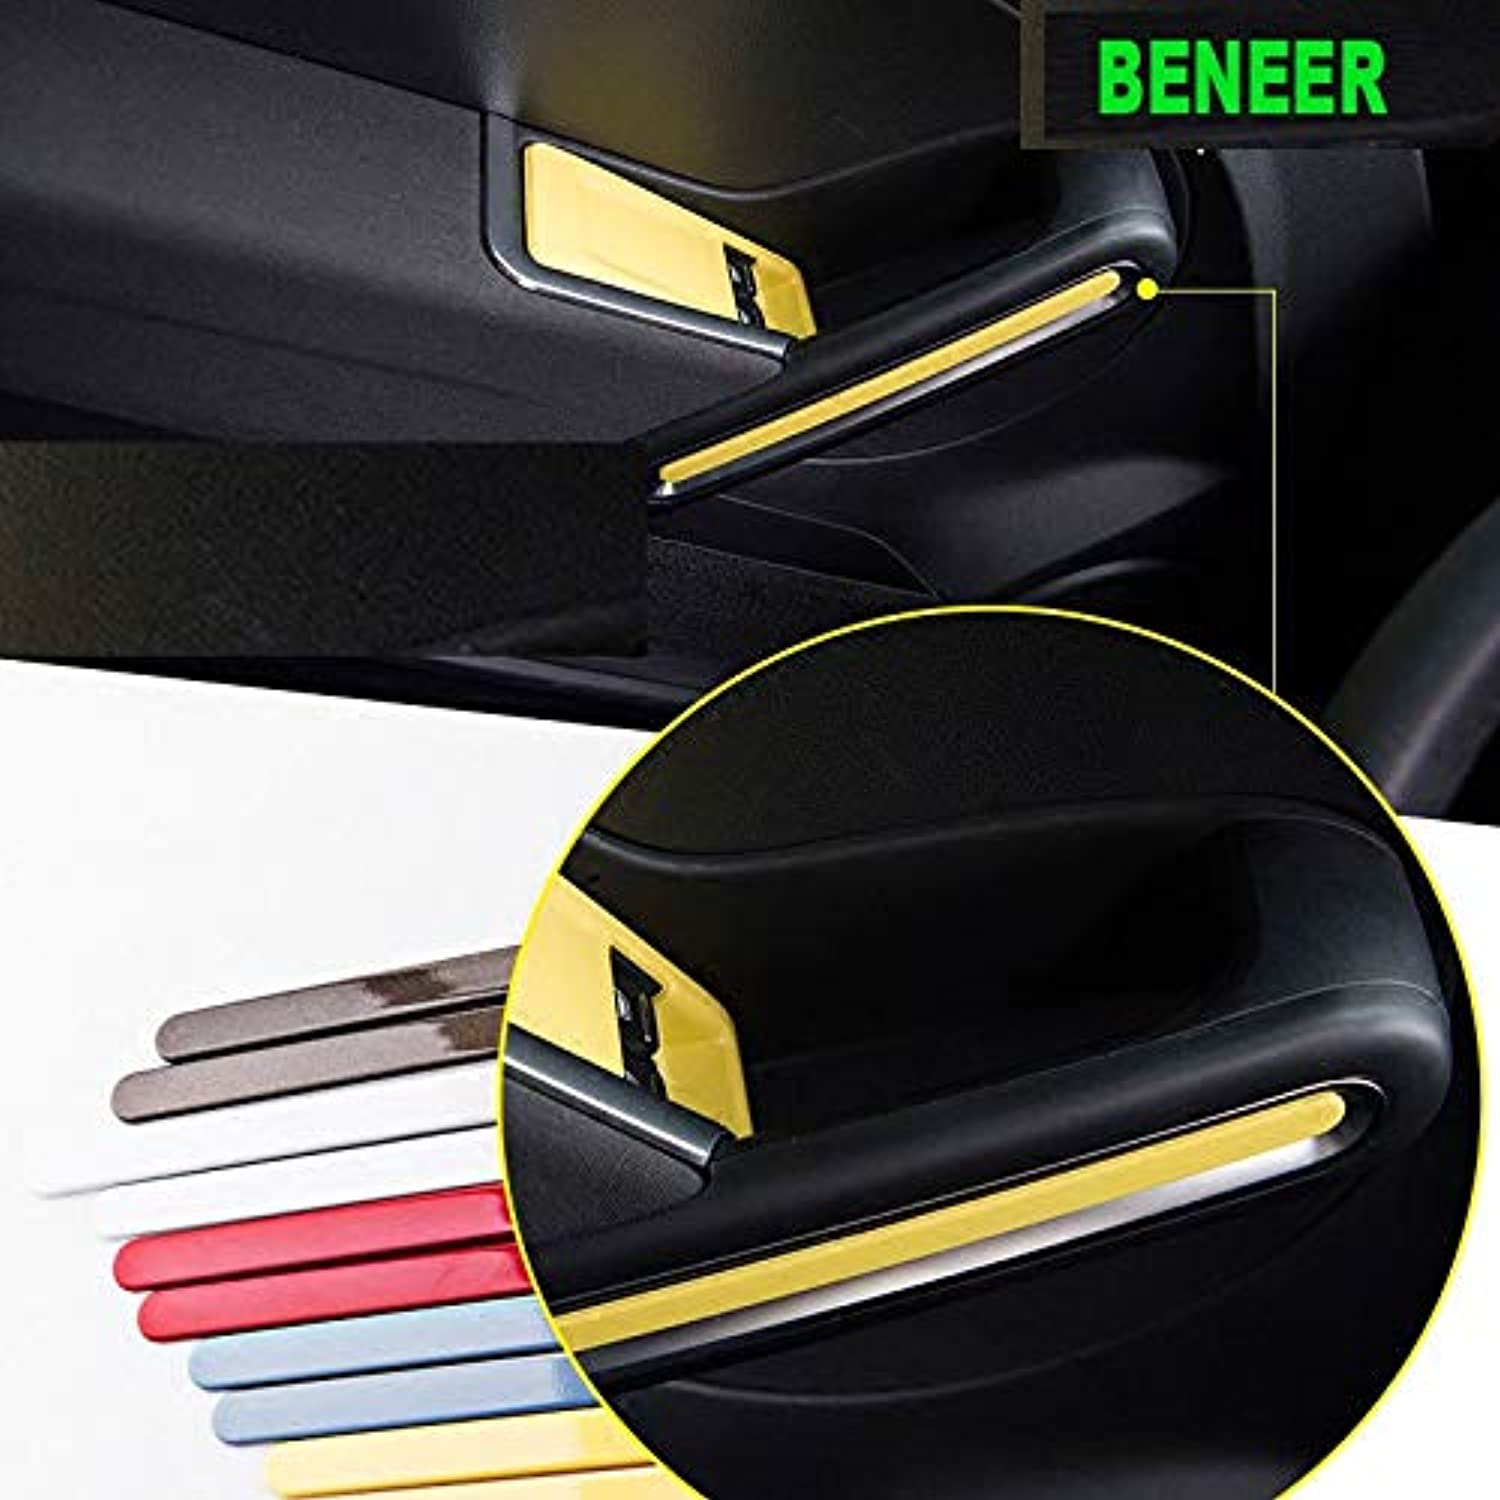 2pcs Plastic car Interior Door handlel Decoration Sticker for Volkswagen Beetle 2013 to 2017